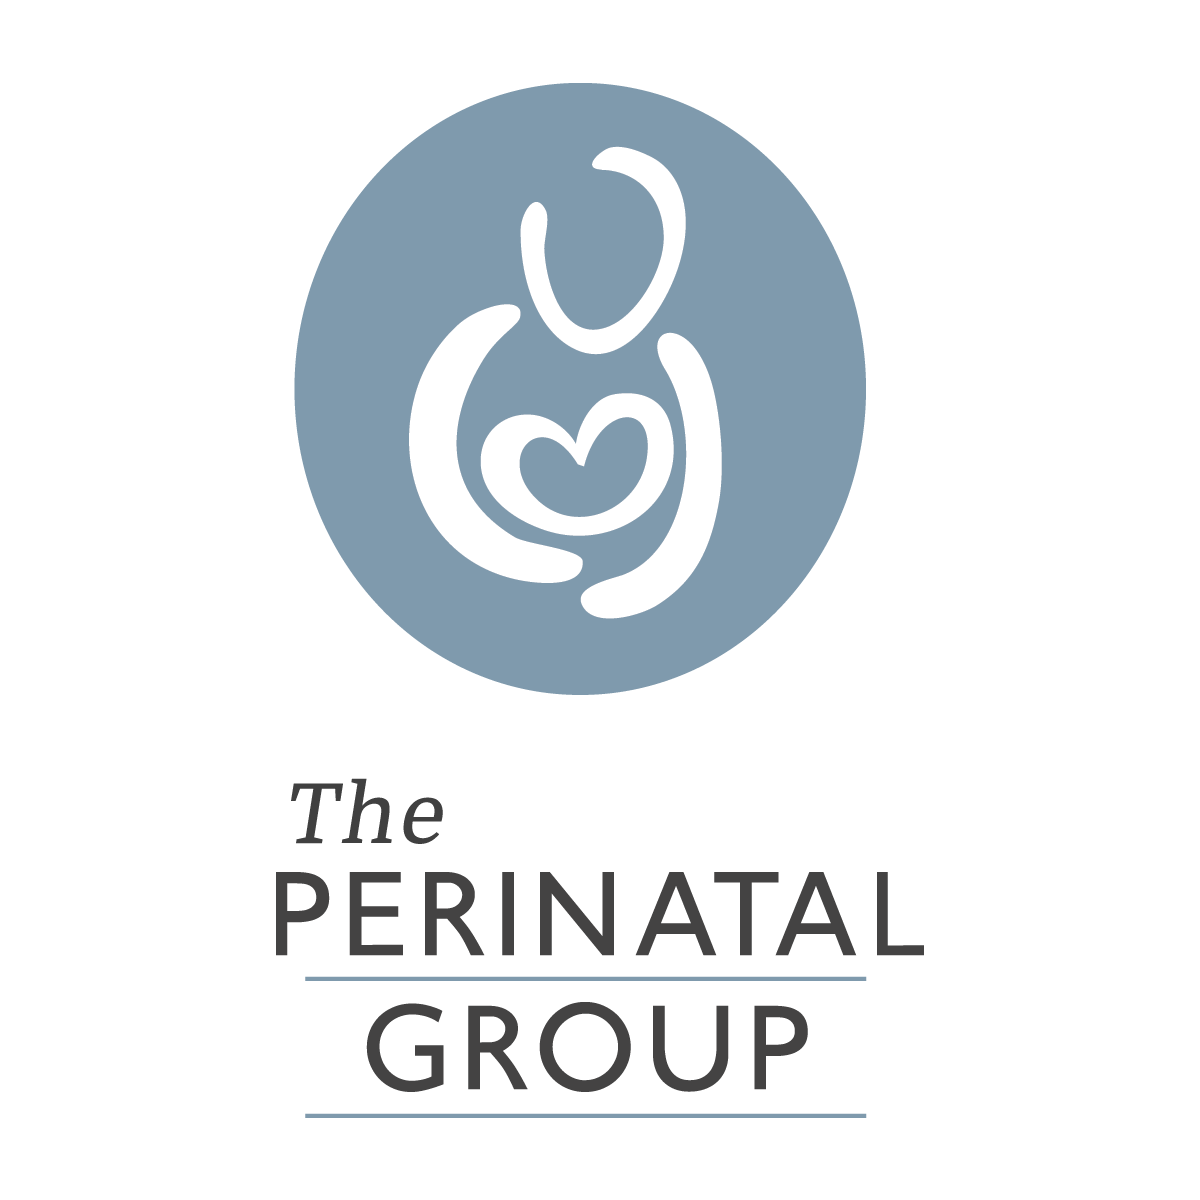 Our Physicians | The Perinatal Group | Your High-Risk